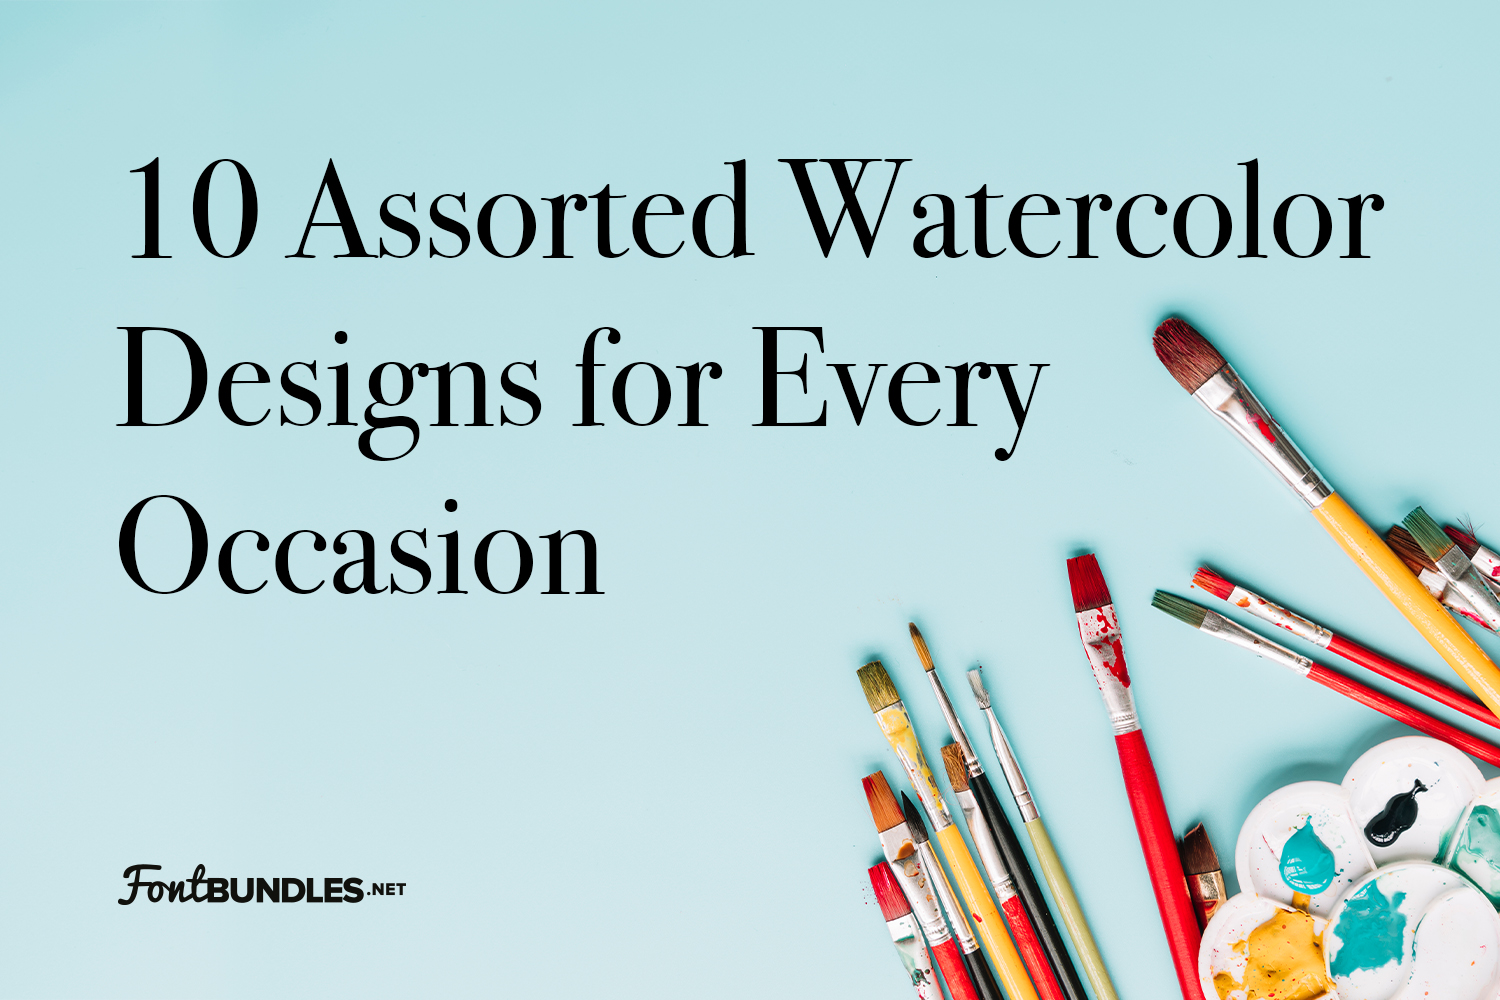 10 Assorted Watercolor Designs for Every Occasion Preview